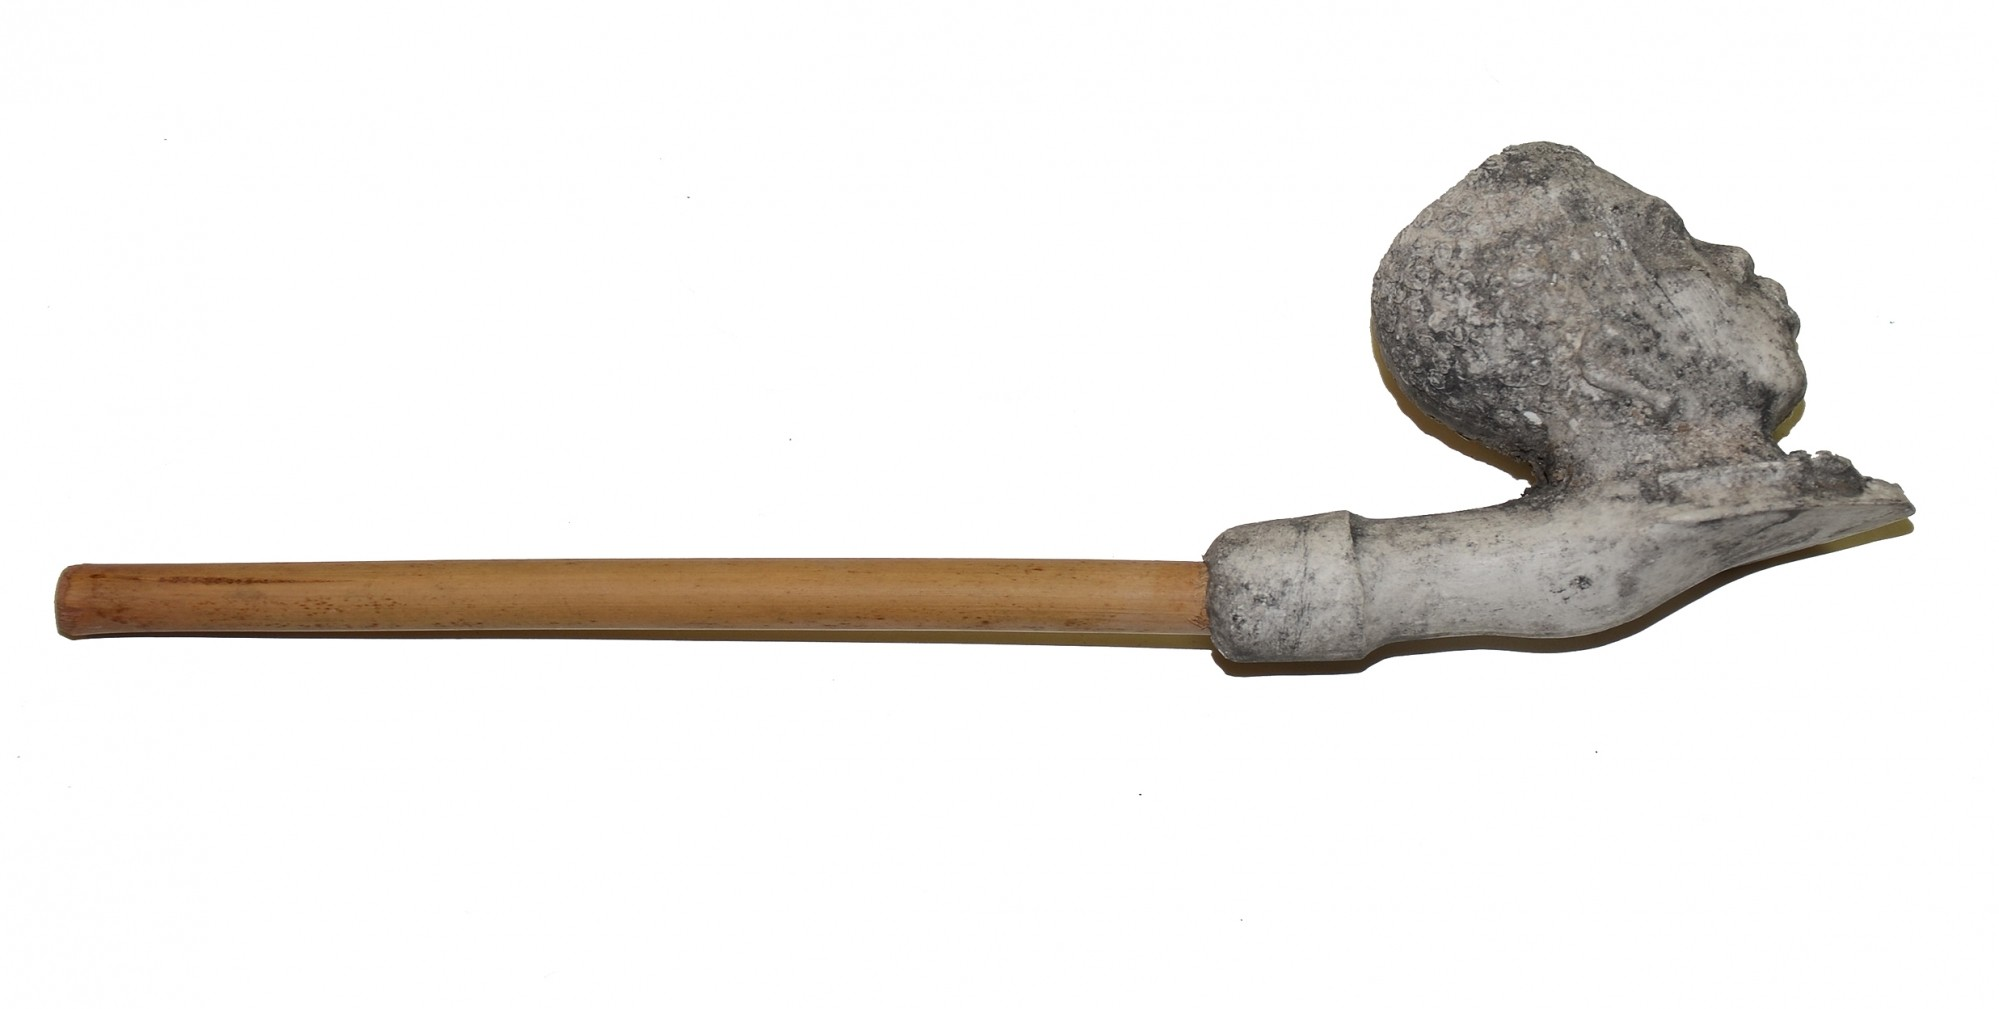 CLAY PIPE WITH BOWL SHAPED LIKE THE HEAD OF AFRICAN AMERICAN